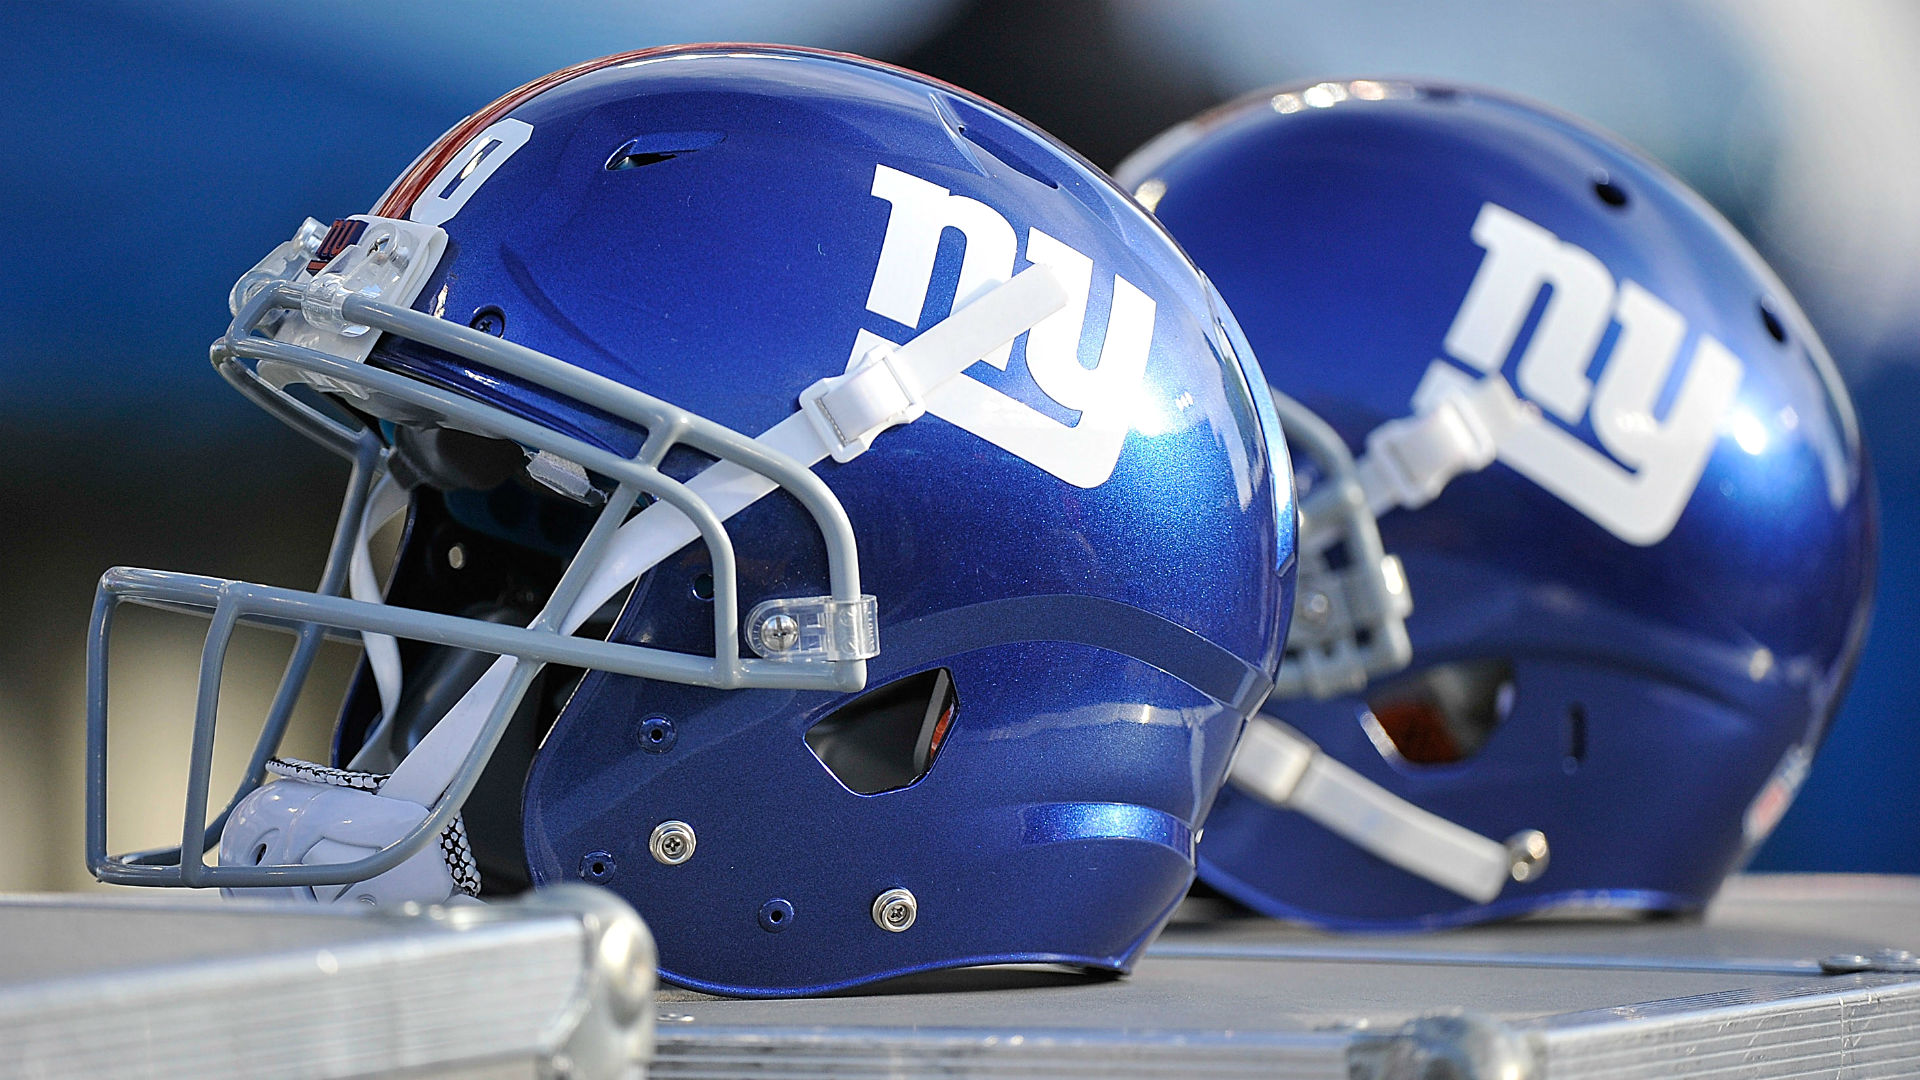 Giants offensive lineman Michael Bowie charged with domestic assault